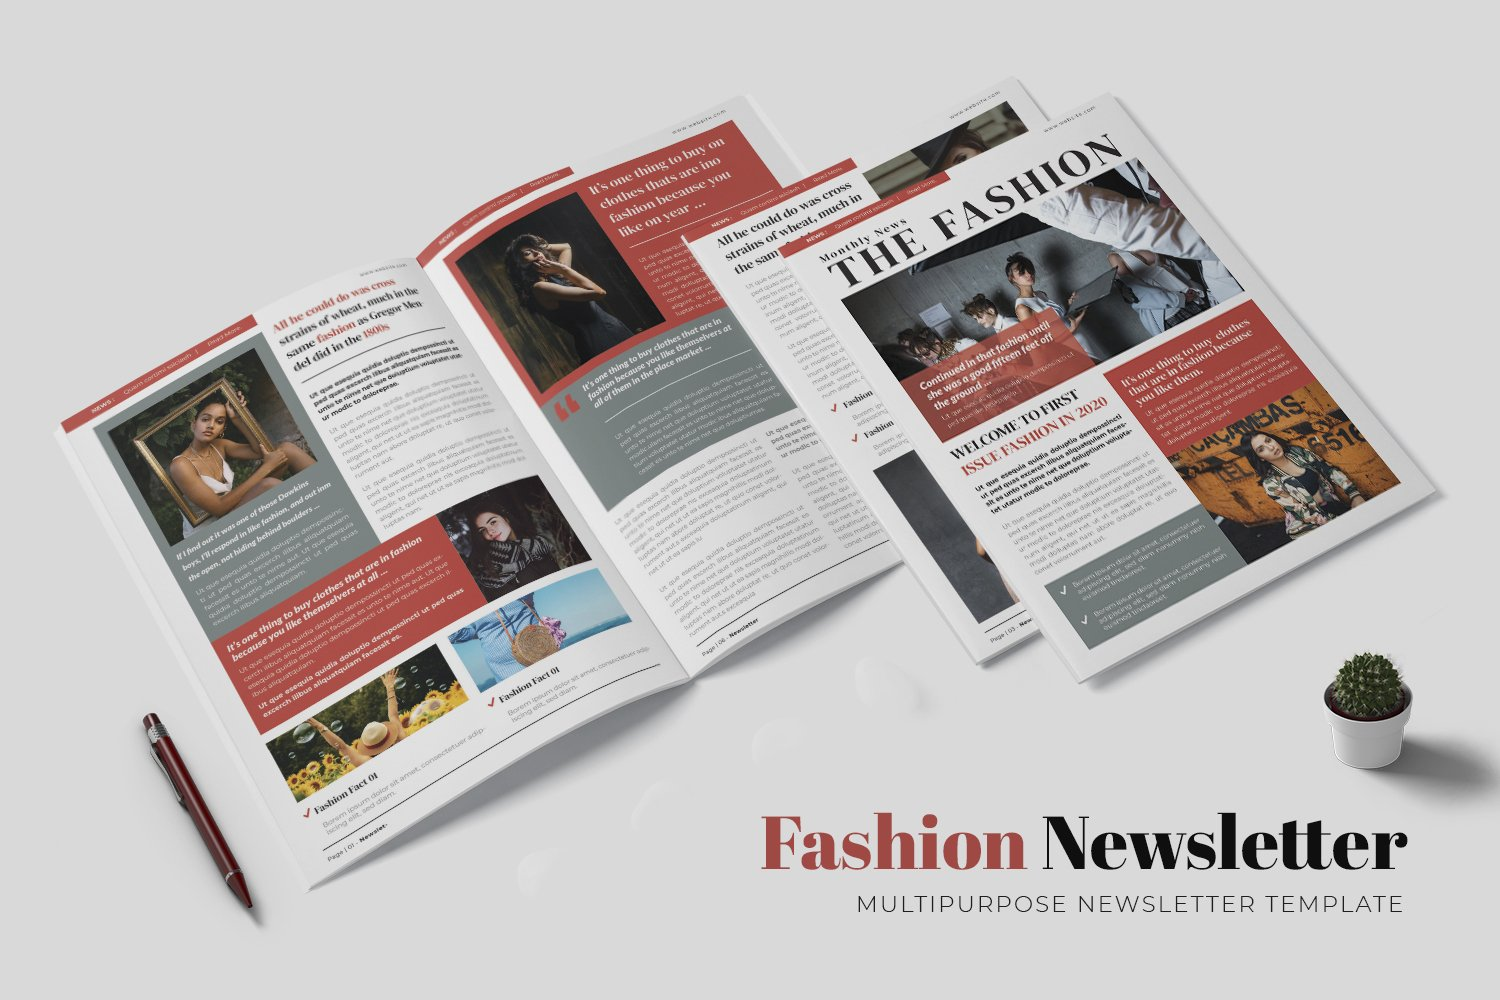 Fashion News Newsletter Template example image 1